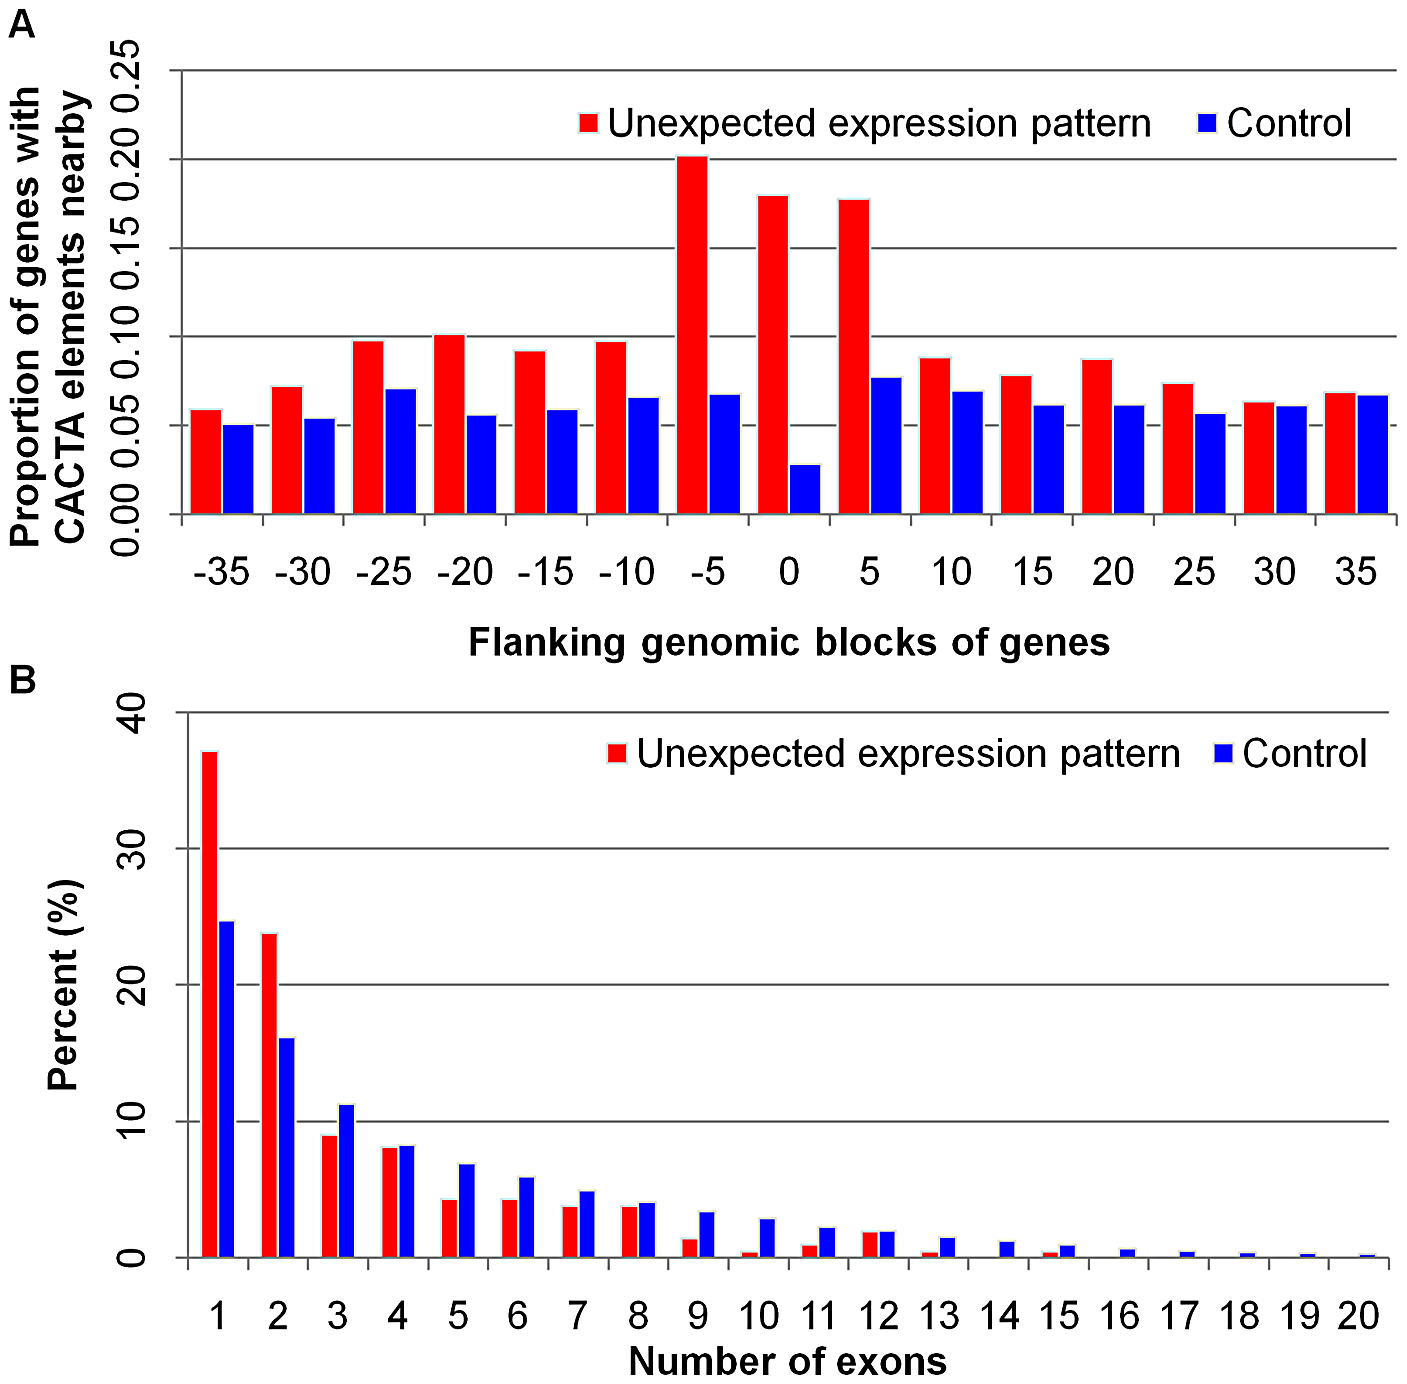 Enrichment of CACTA-like elements and fewer exon number bias in genes with unexpected expression patterns.